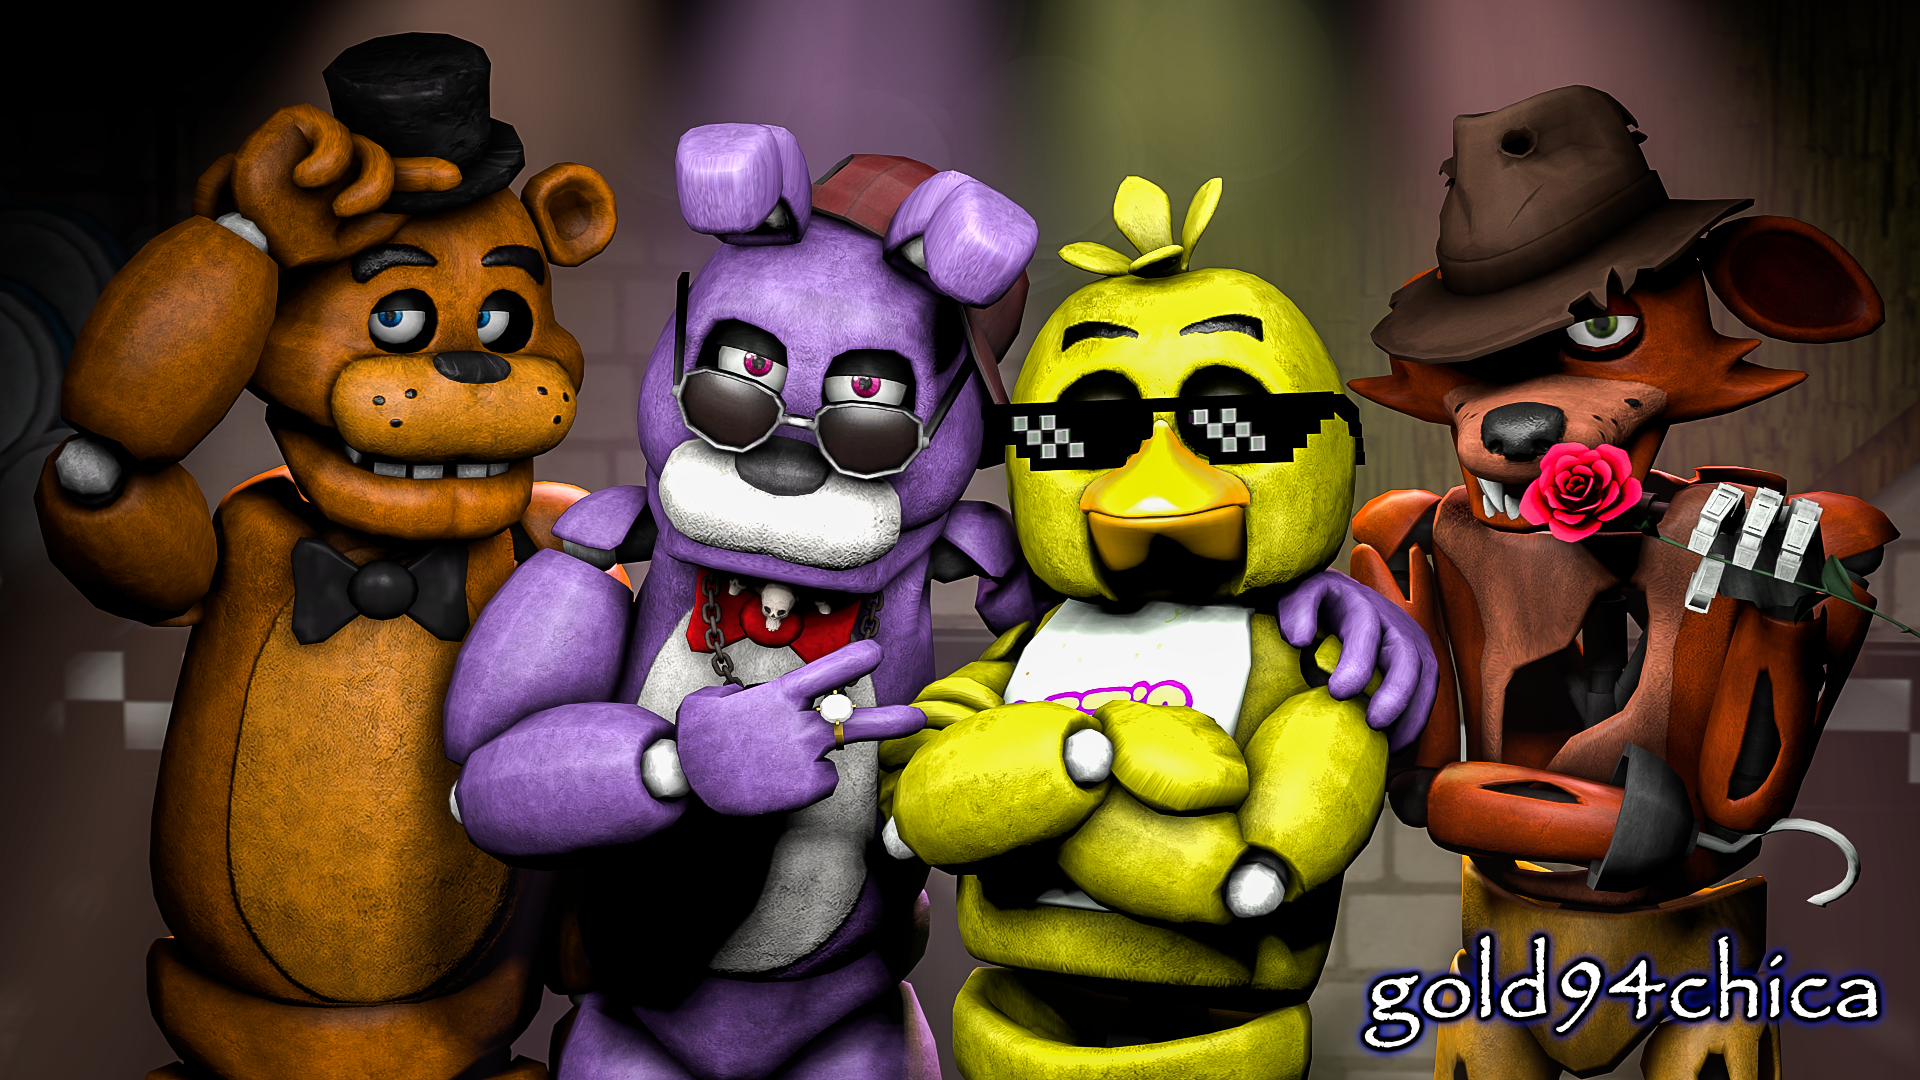 Epic Friends Forever FNAF SFM Wallpaper By Gold94chica